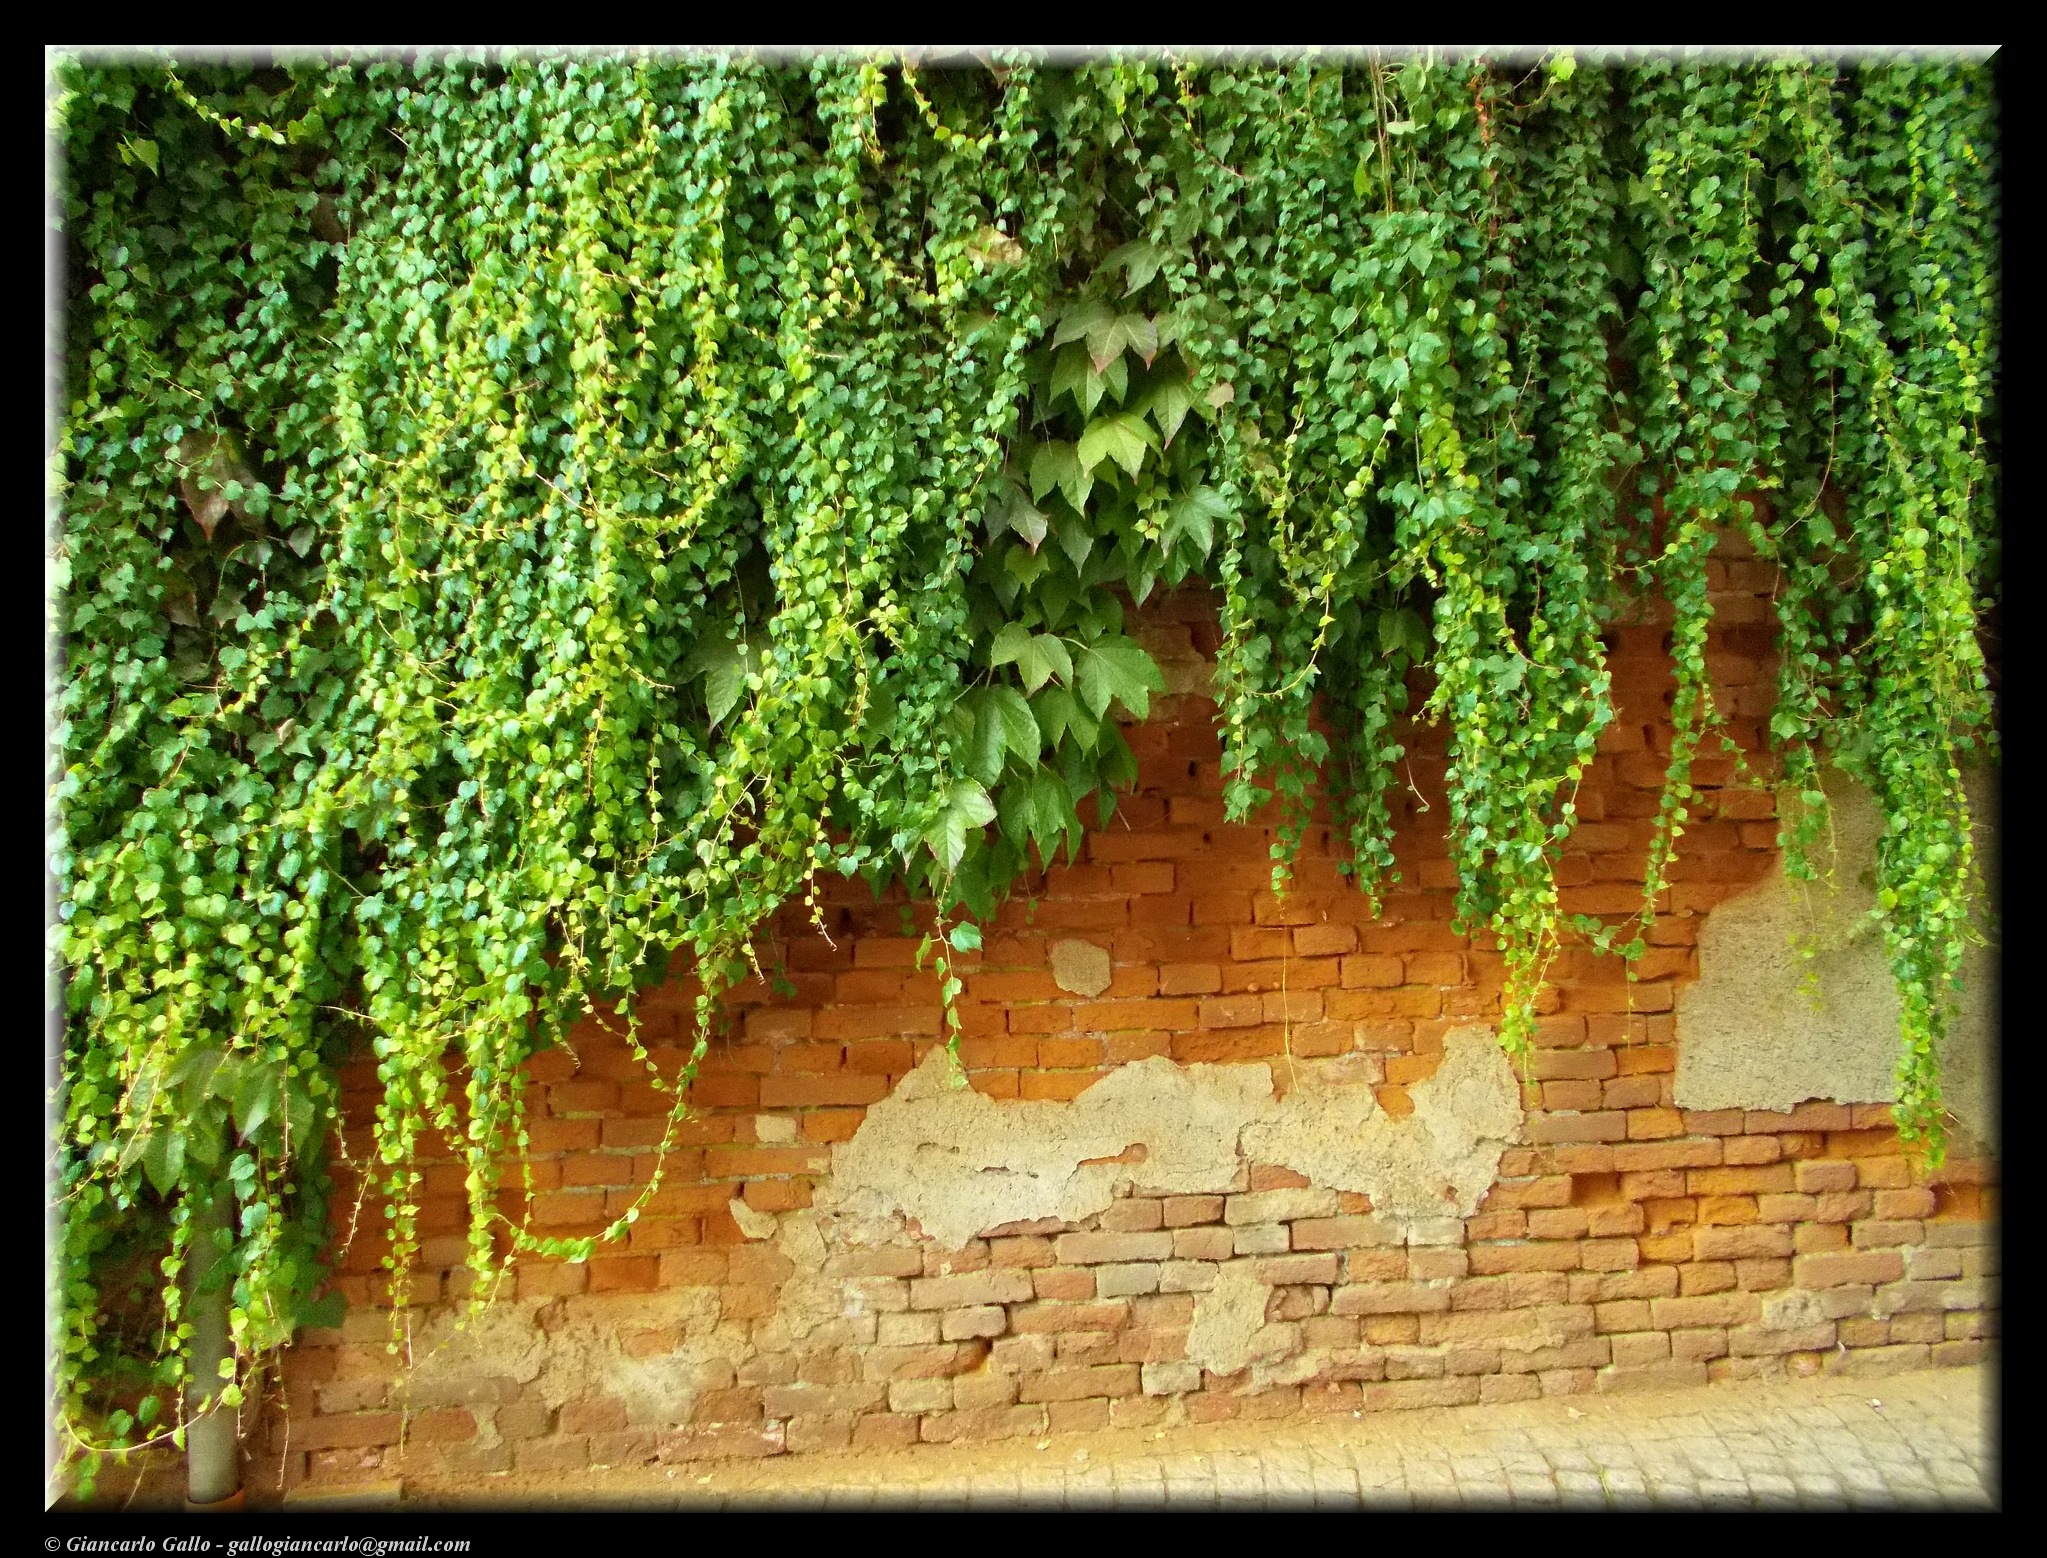 Ivy on the wall by Giancarlo Gallo